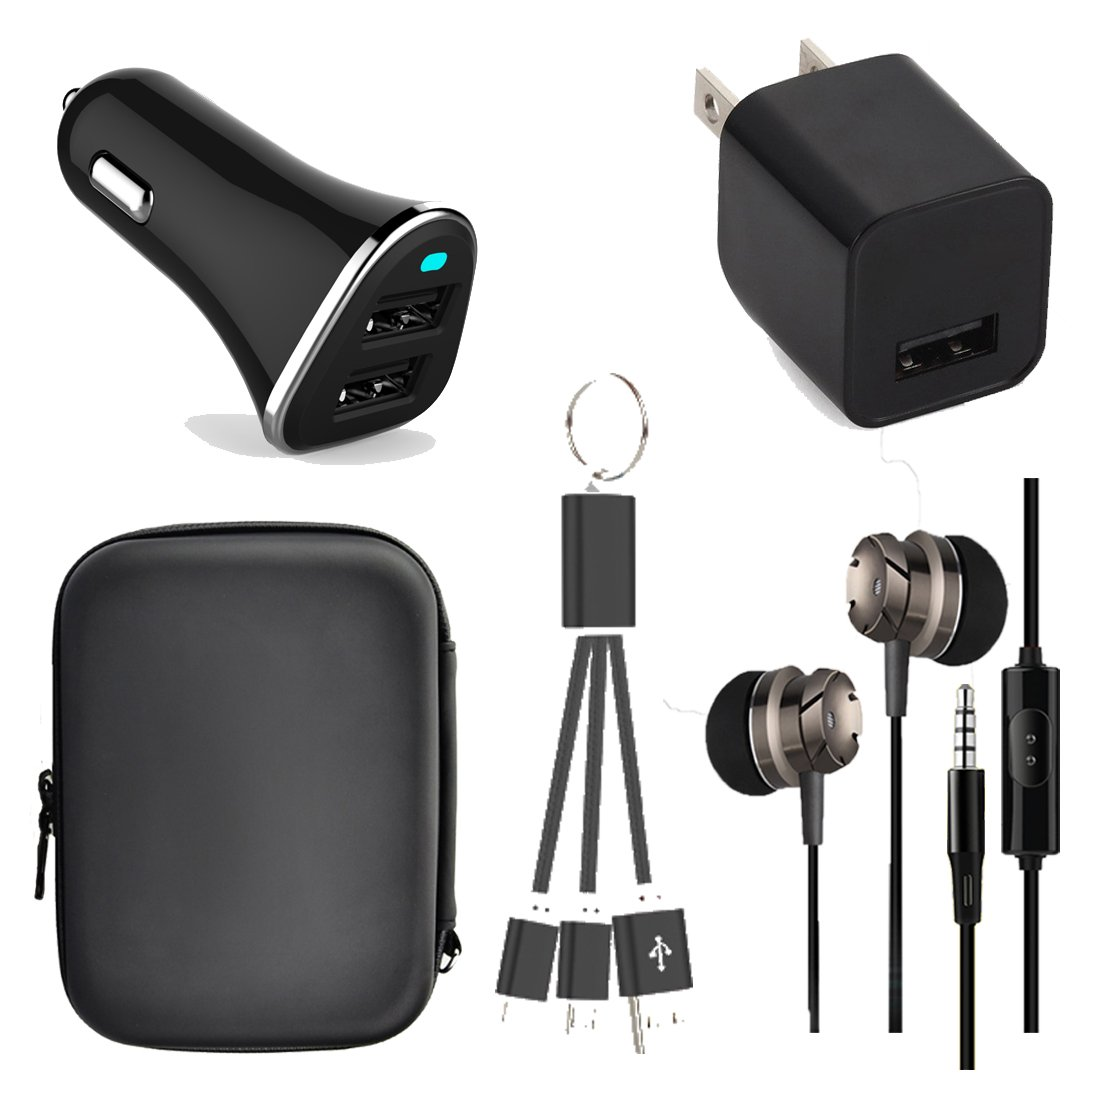 Caithly Mobiel Phone Accessory 5 in 1 charger kit ,Pouch bag,Dual usb car charger,Fast usb wall charger ,Headphone with Mic and Control ,Data charging cable for iphone and Android,Christmas gift